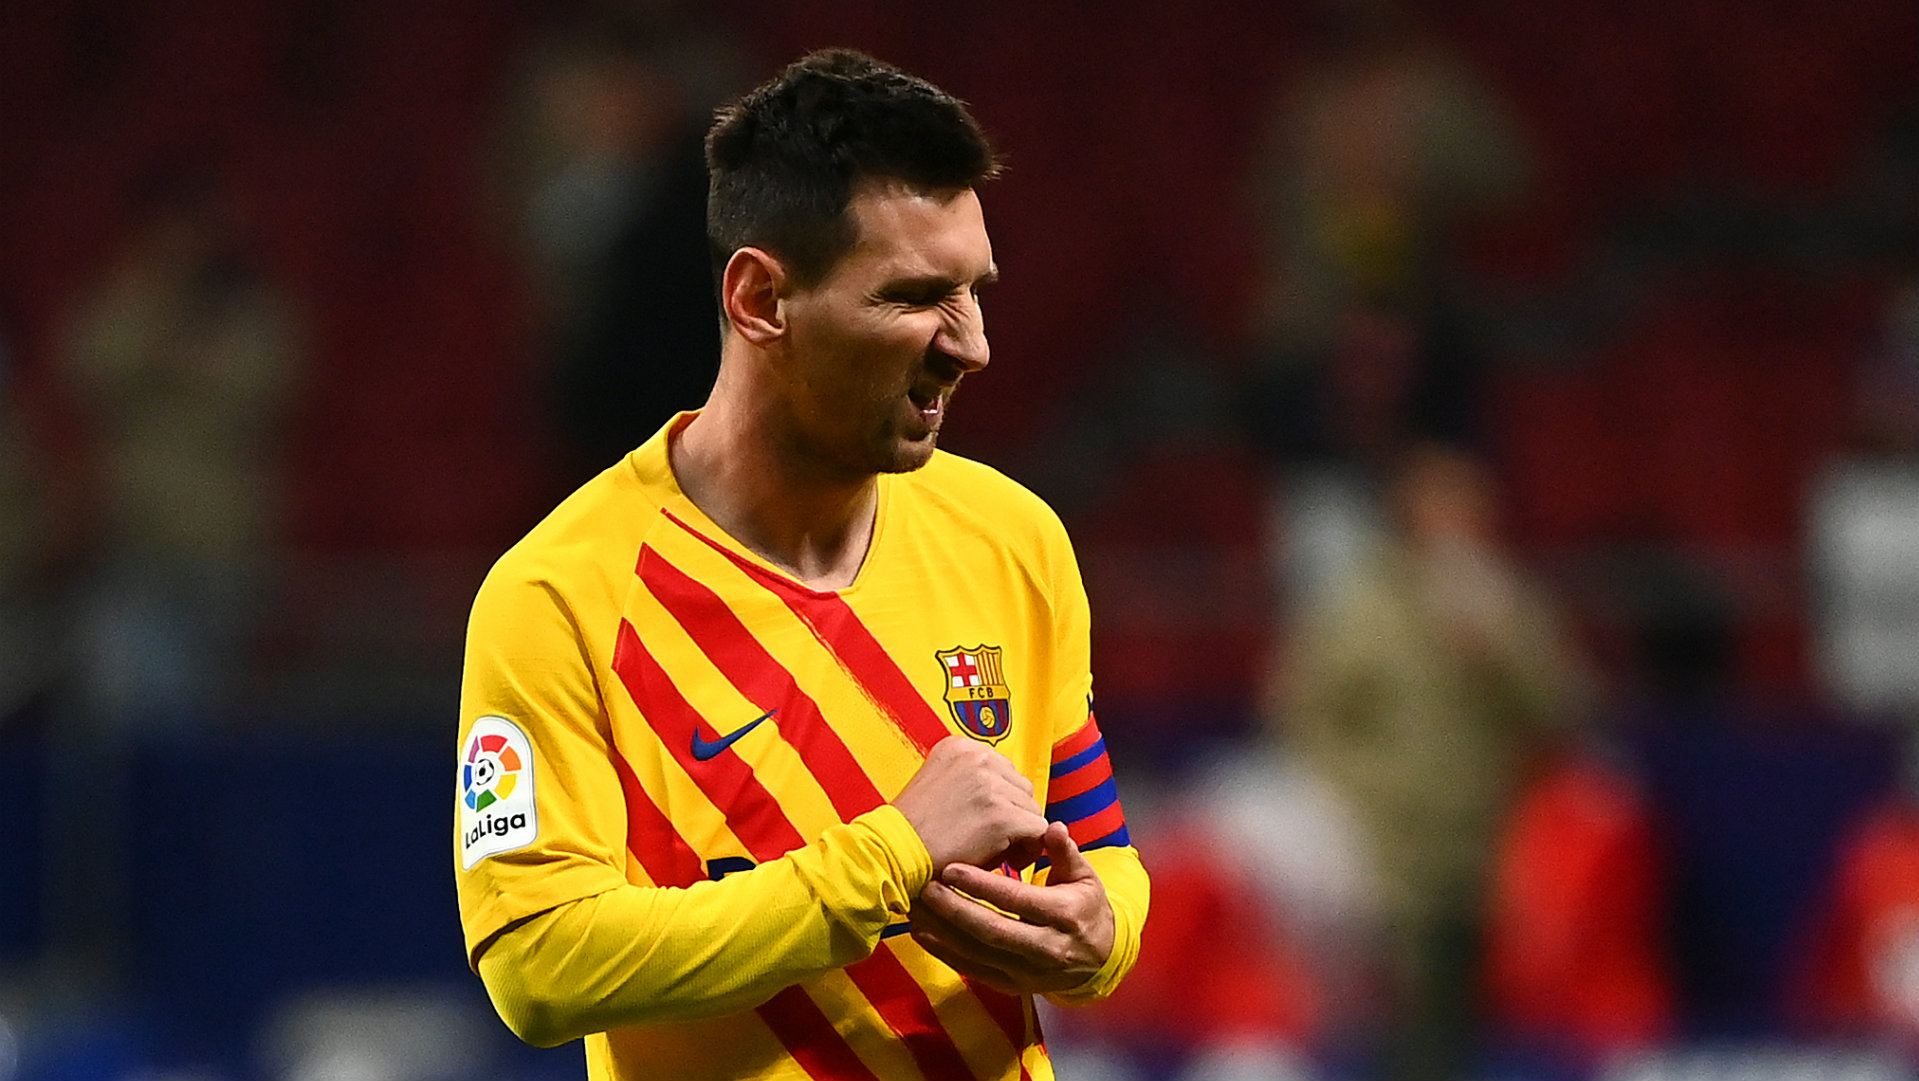 Transfer news and rumours LIVE: Man City to offer Messi 10-year contract